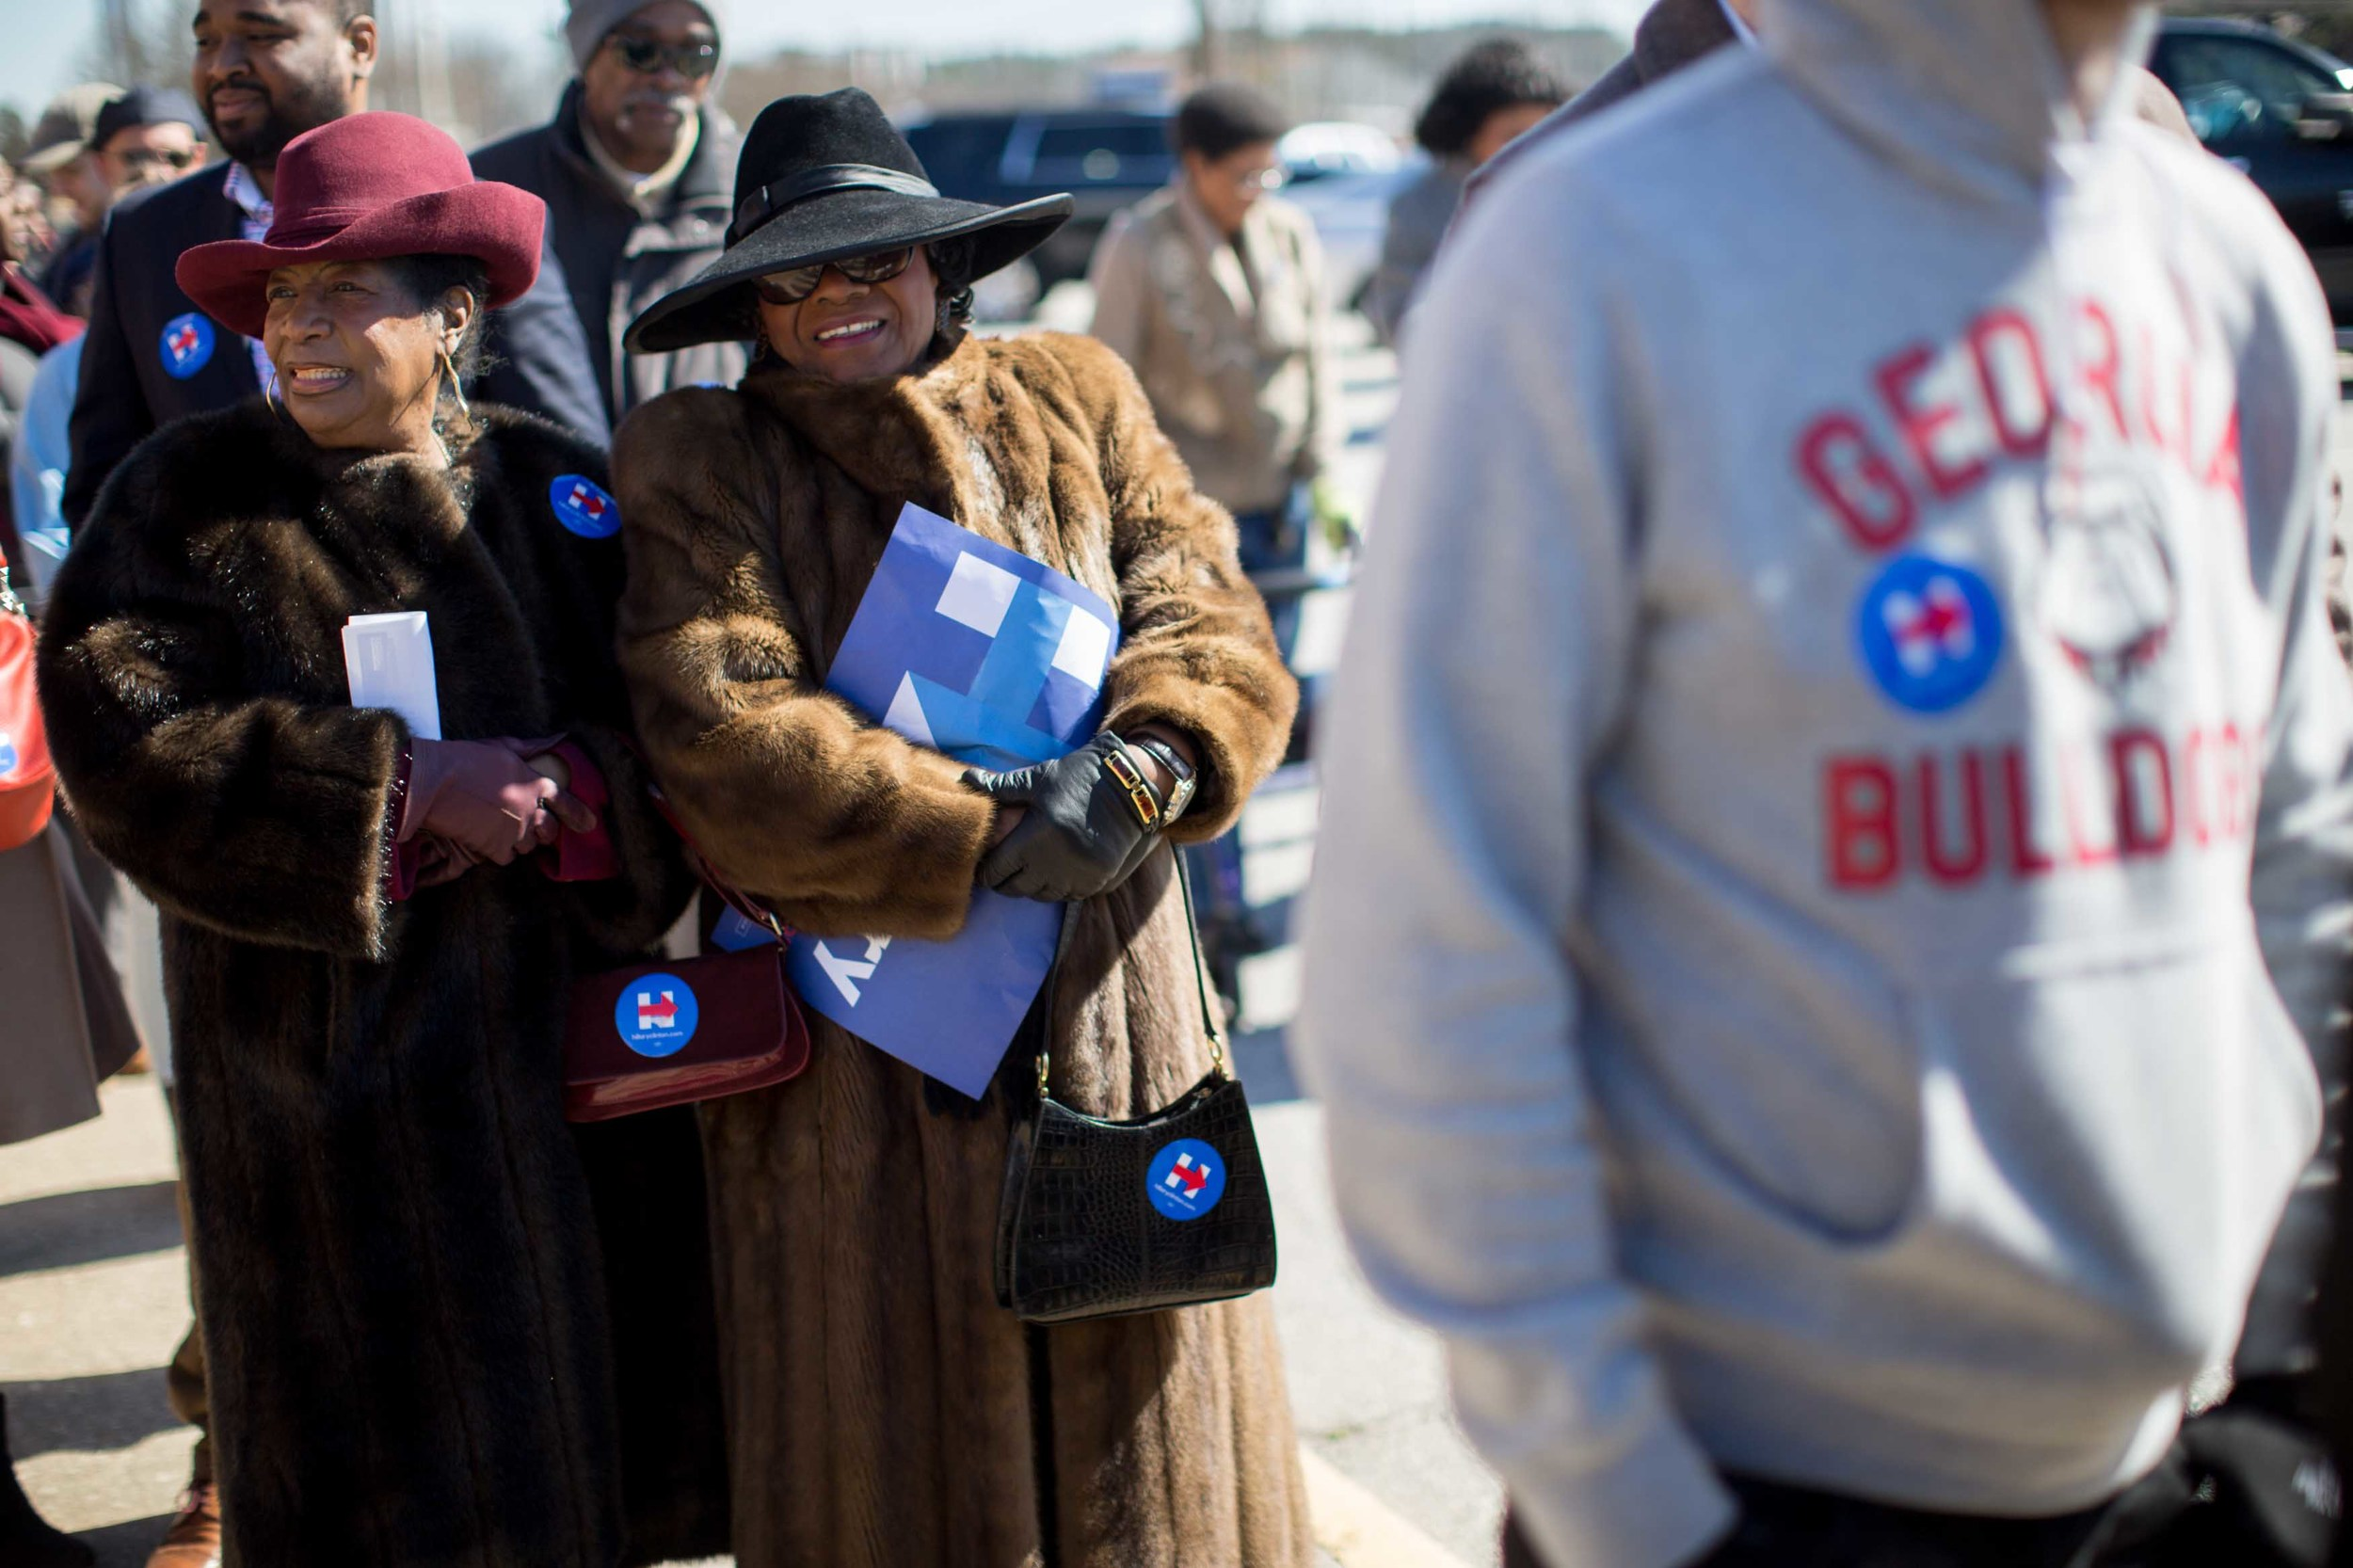 Bendolyn Ricks, left, and Anne McKenzie, center, wait in line to see former President Bill Clinton speak during a campaign stop for his wife, Democratic presidential candidate Hillary Clinton, at North Clayton High School.  Branden Camp/ZUMA Wire